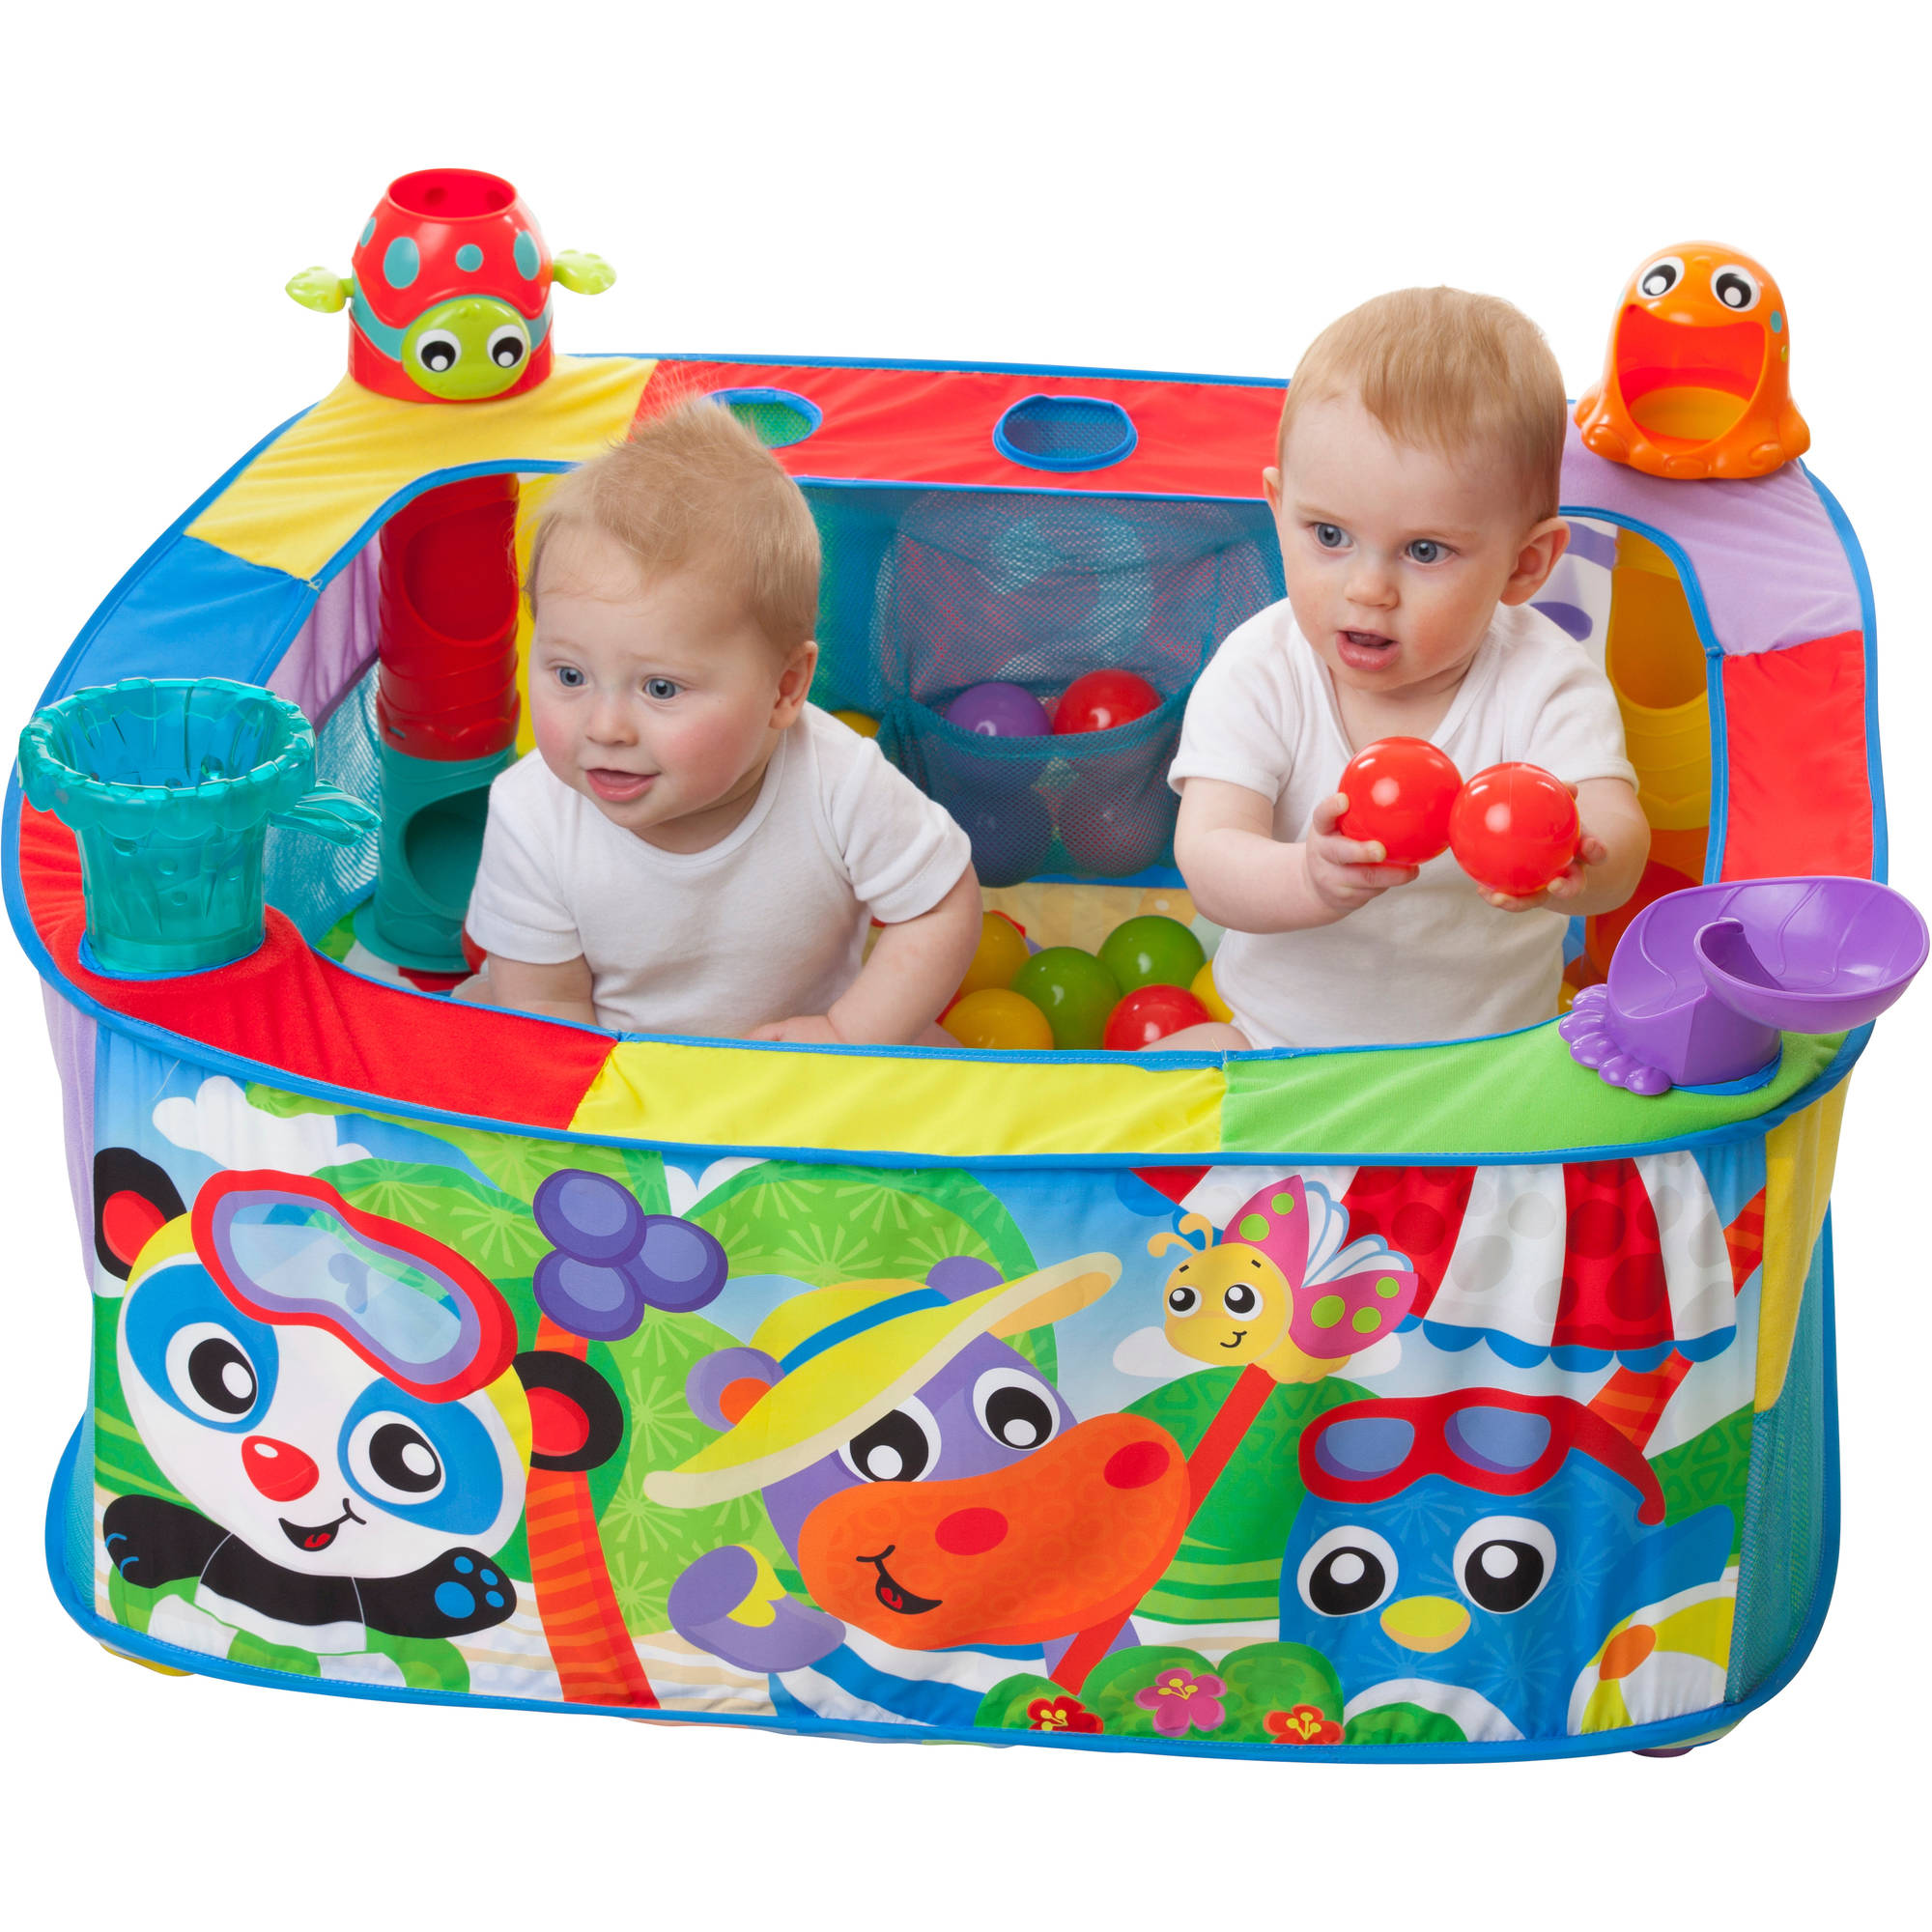 Playgro Pop And Drop Toddler Play Center Acitivty Ball Gym For Baby Infant New